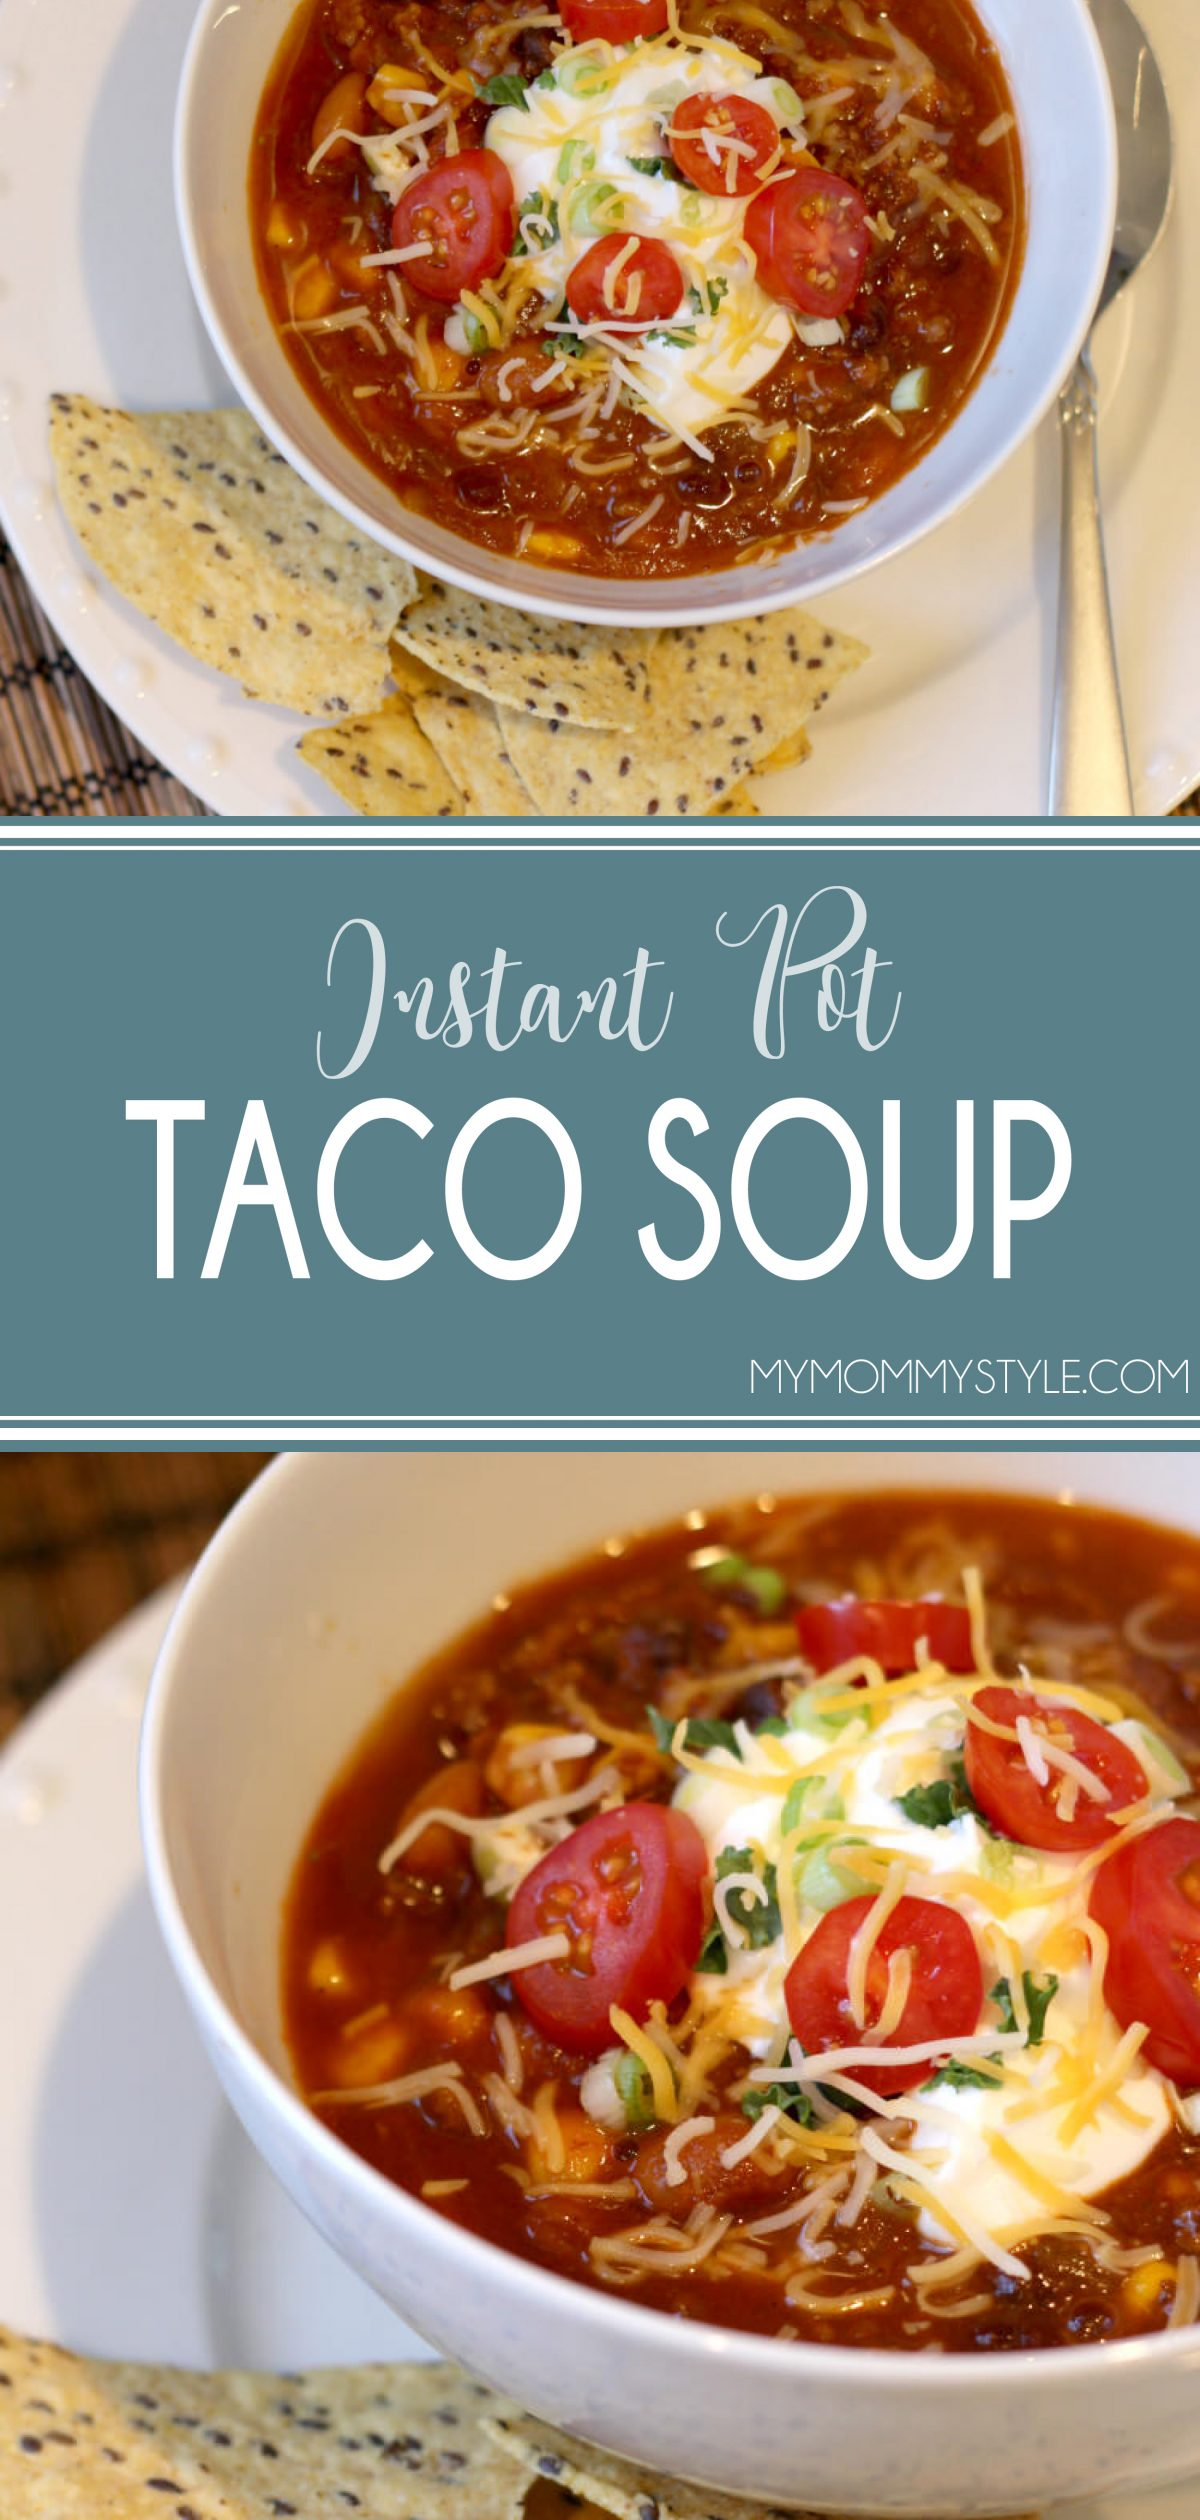 Instant Pot Taco Soup in under twenty minutes! This recipe is so easy, healthy, and delicious! Try this Taco Soup recipe as a week night meal or to share! via @mymommystyle